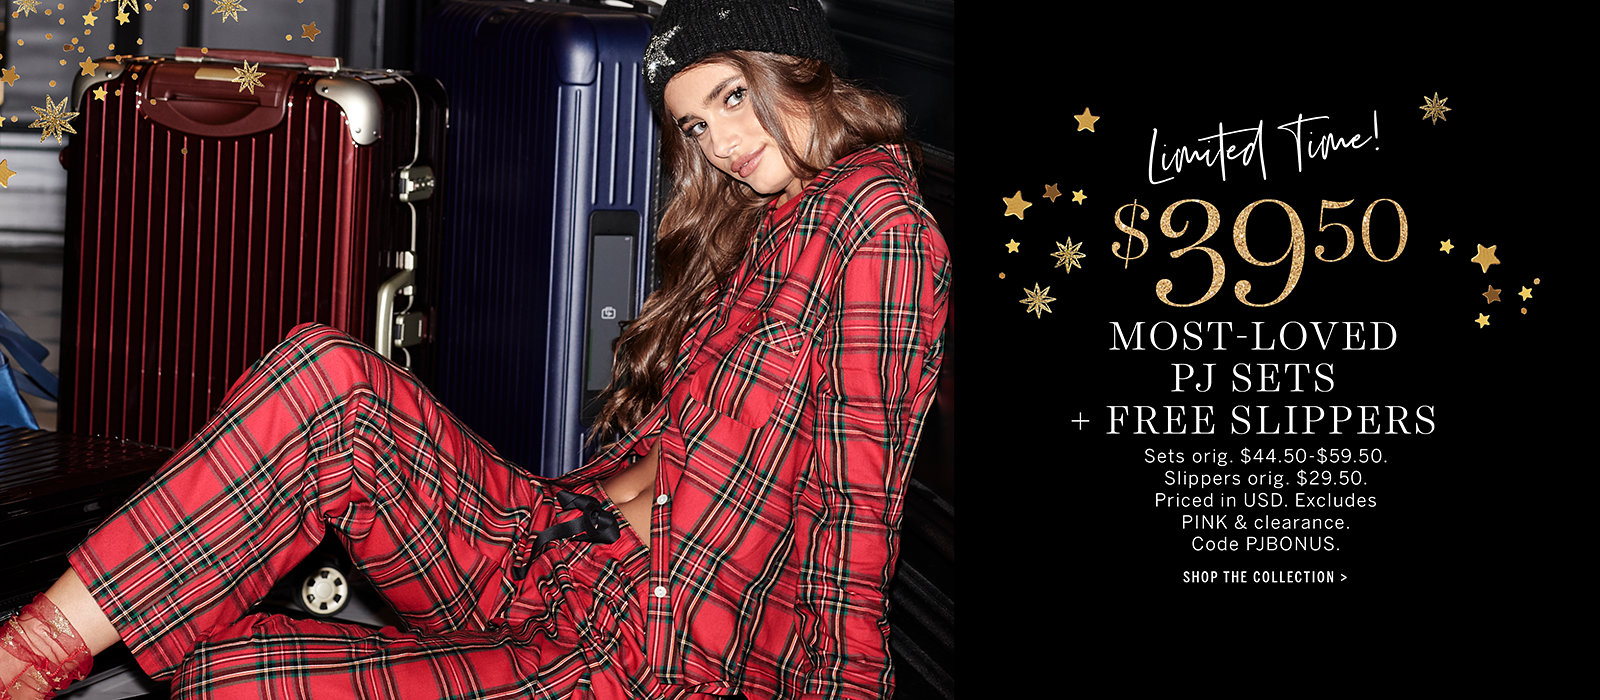 $39.50 Most-Loved PJ Sets + Free Slippers